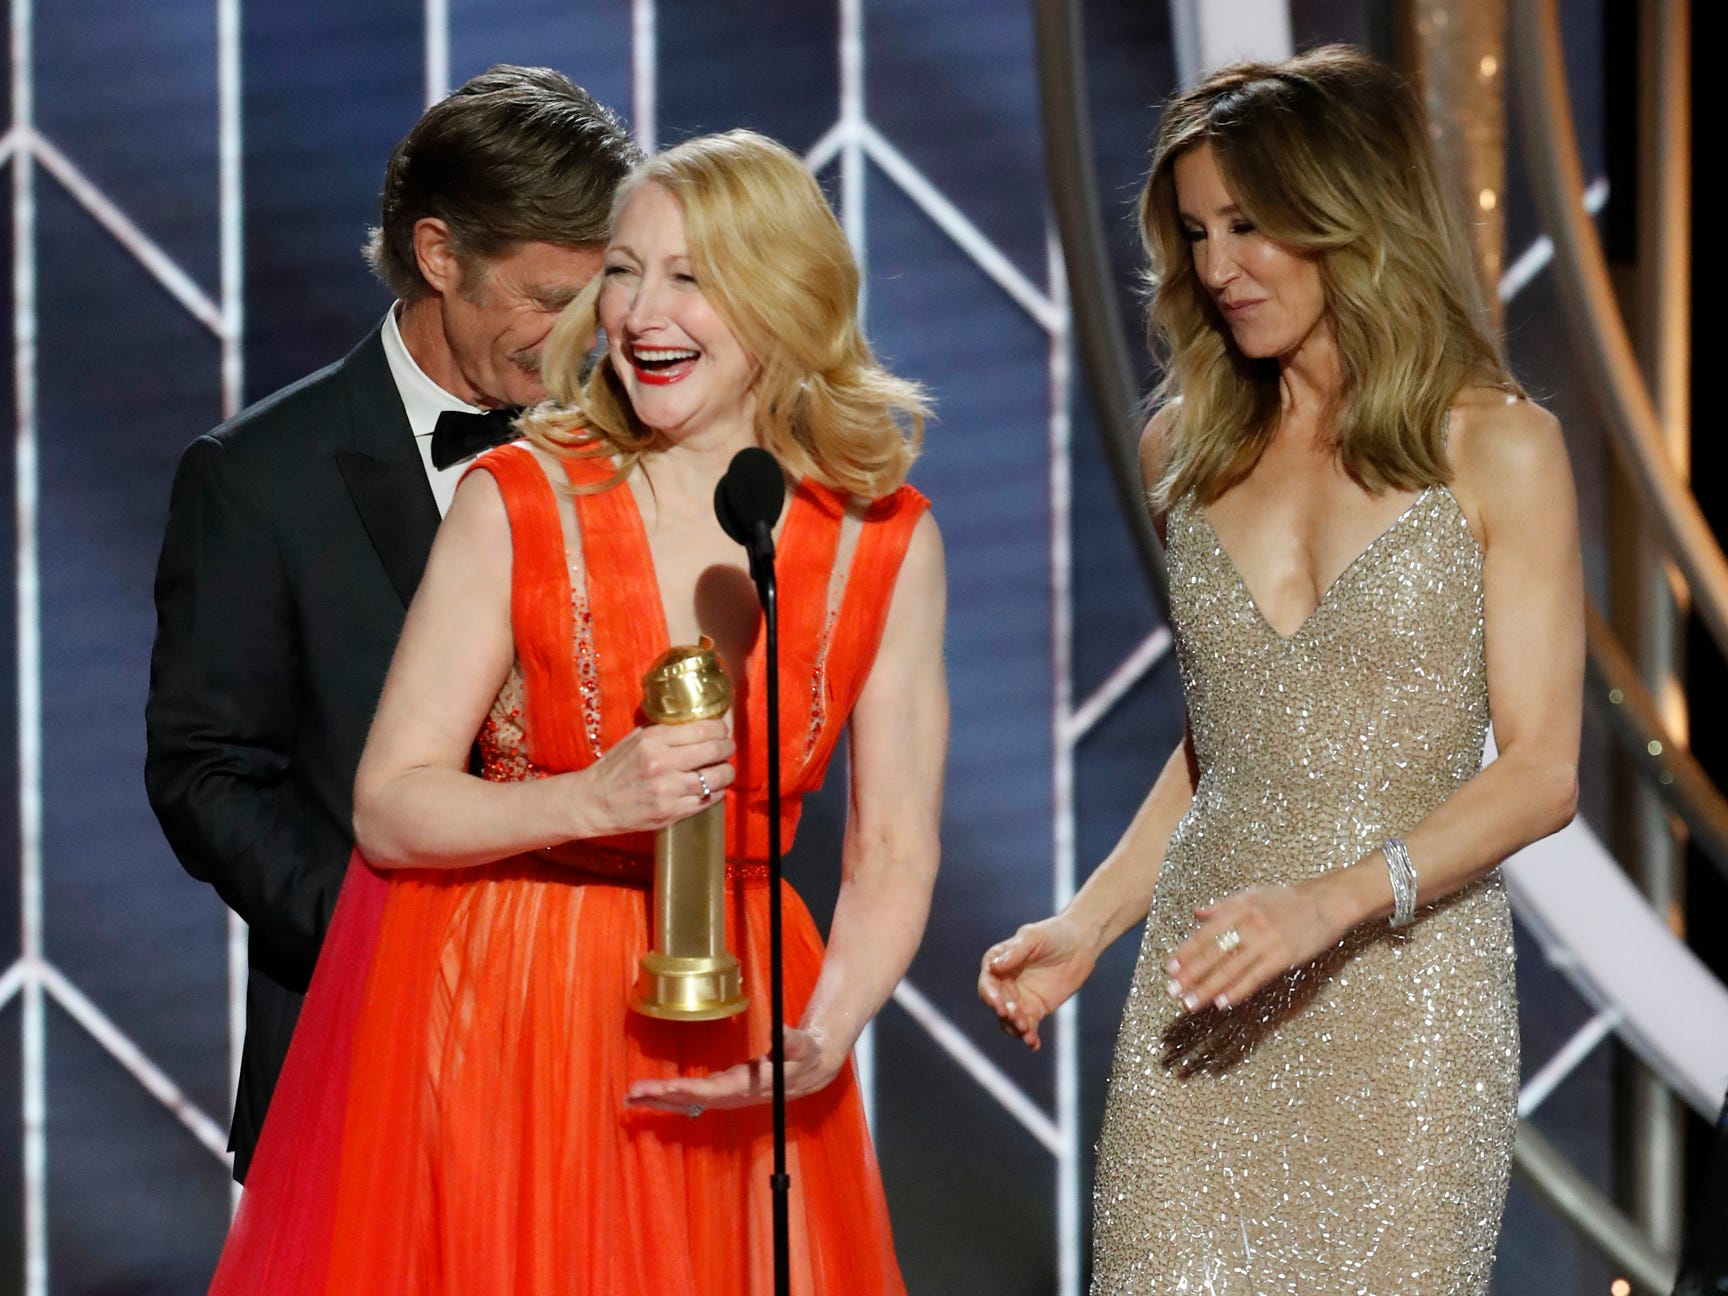 Patricia Clarkson, accepts the award for Best Supporting Actress - Series/Limited Series/TV Movie during the 76th Golden Globe Awards.